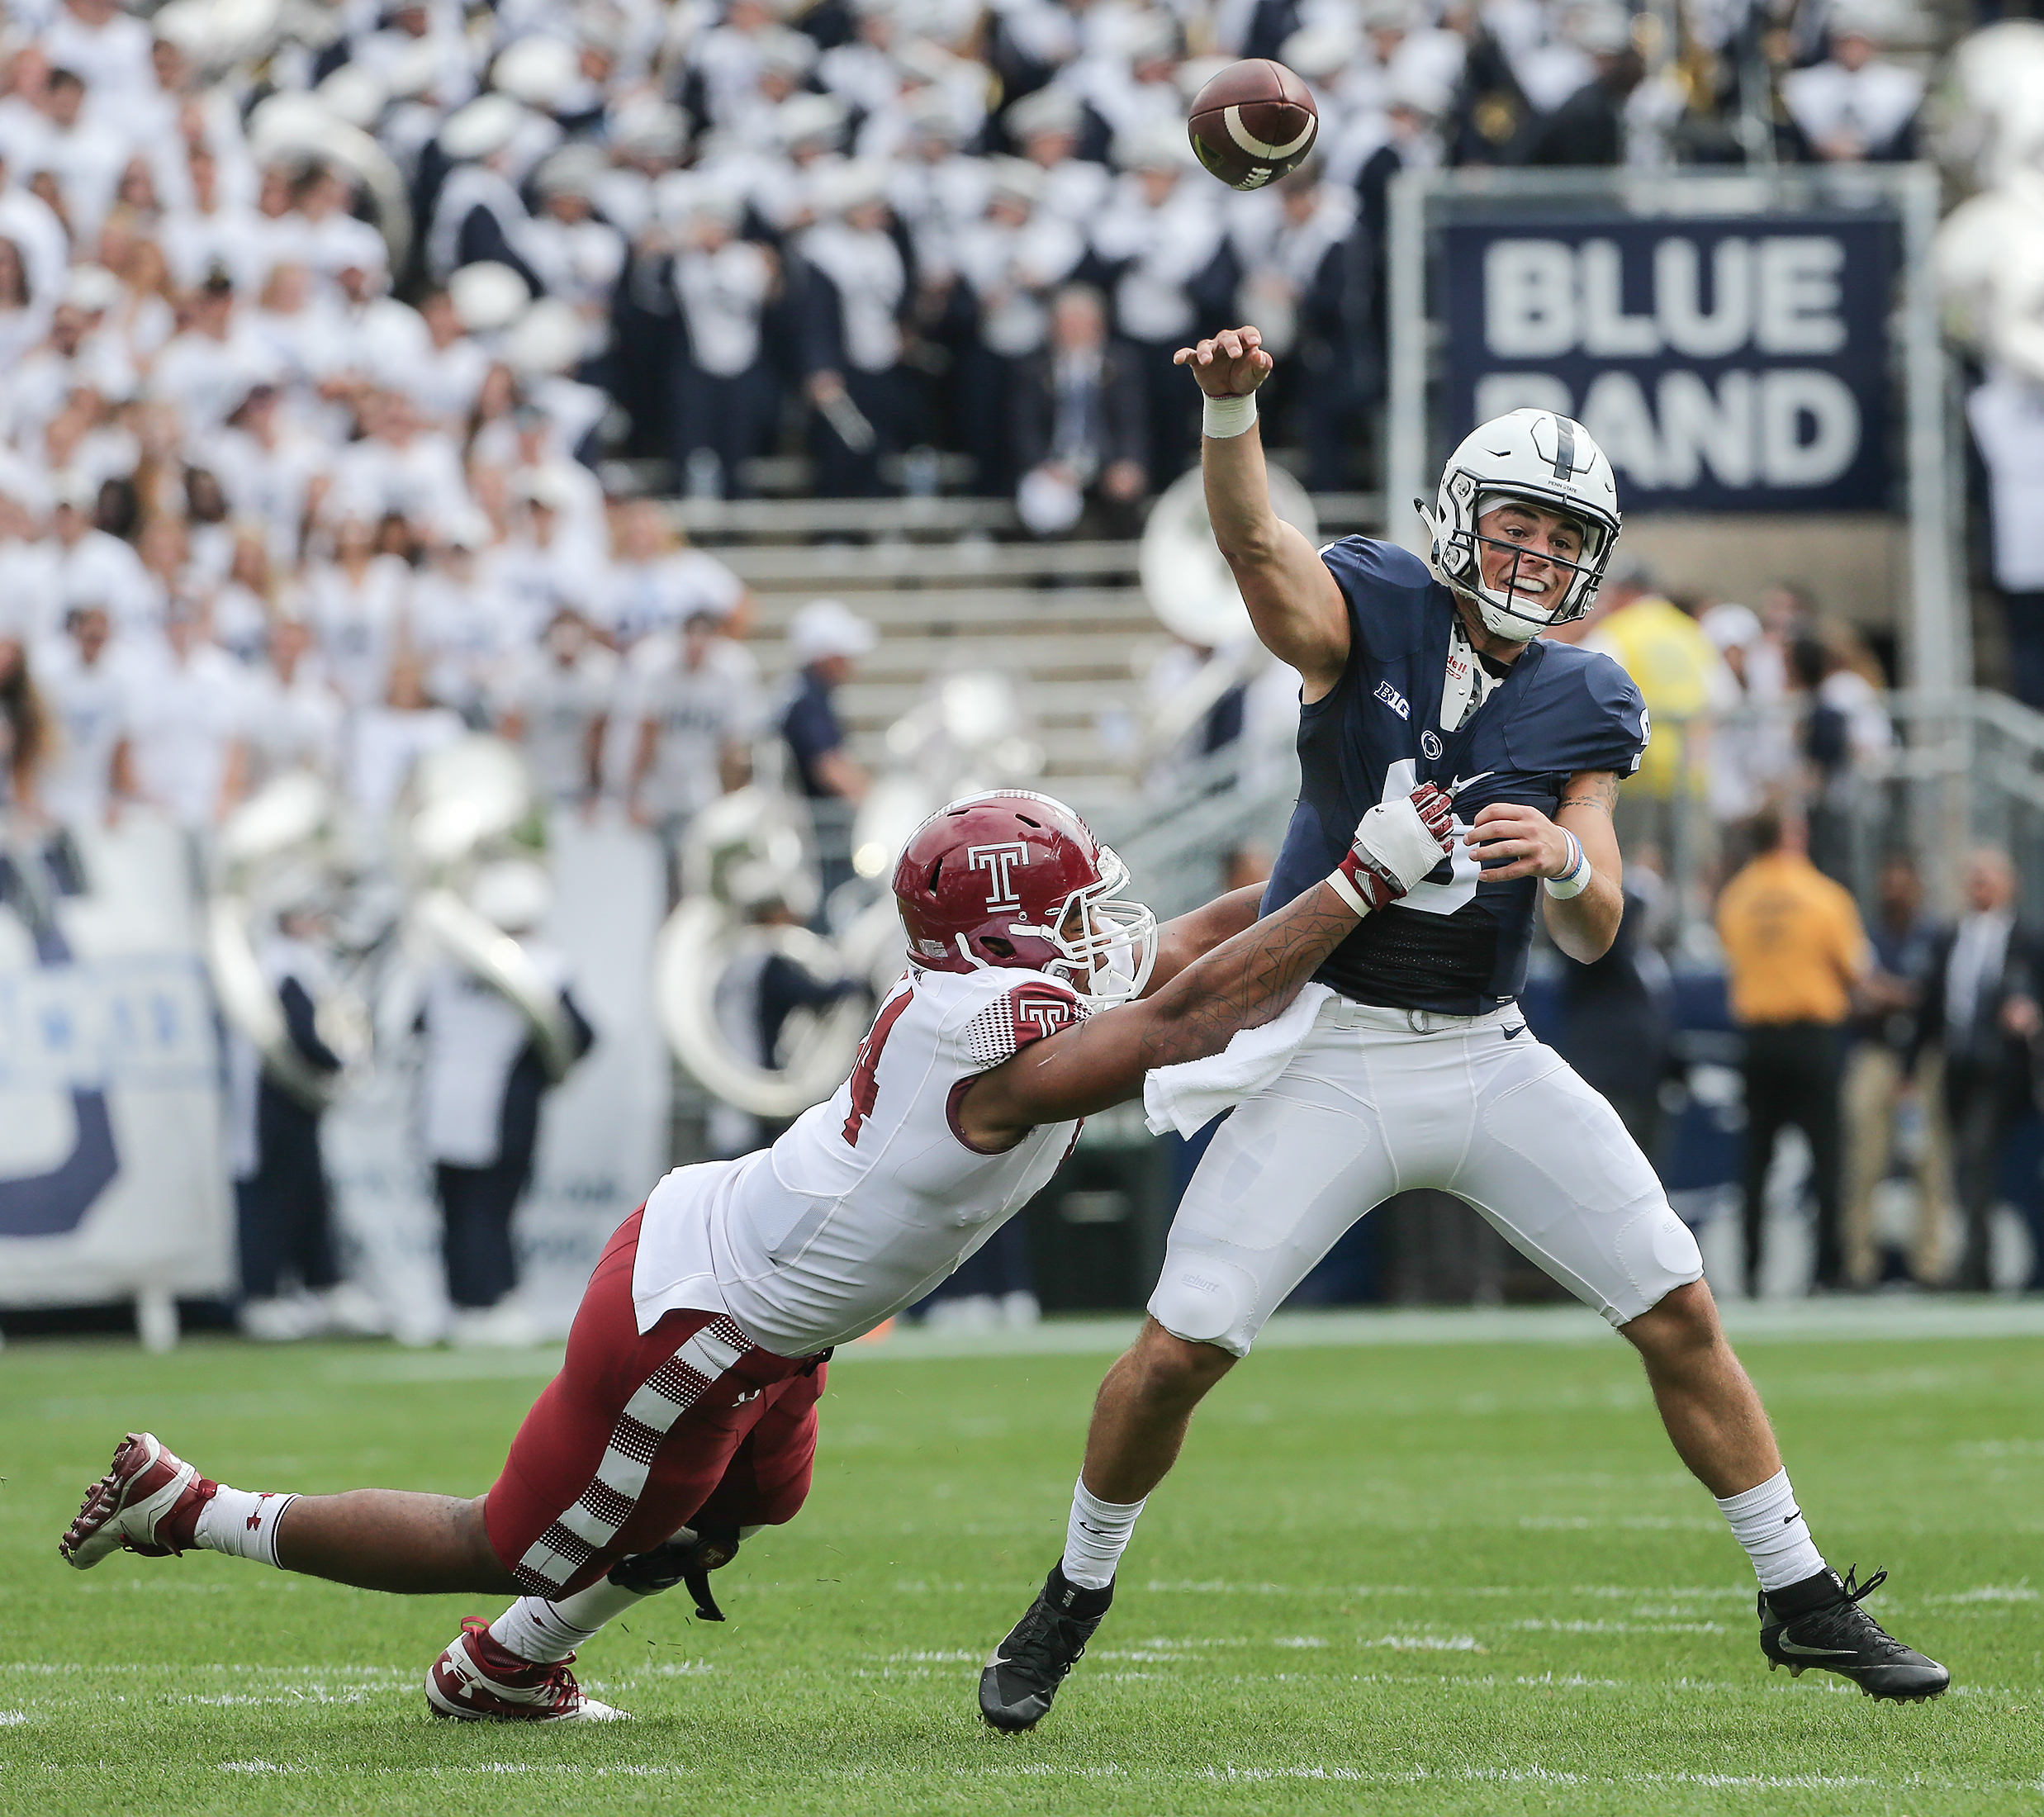 Temple´s Jullian Taylor puts pressure on Penn State´s Trace McSorley throws an incomplete pass during the 1st quarter in State College, Saturday September 17, 2016. STEVEN M. FALK / Staff Photographer